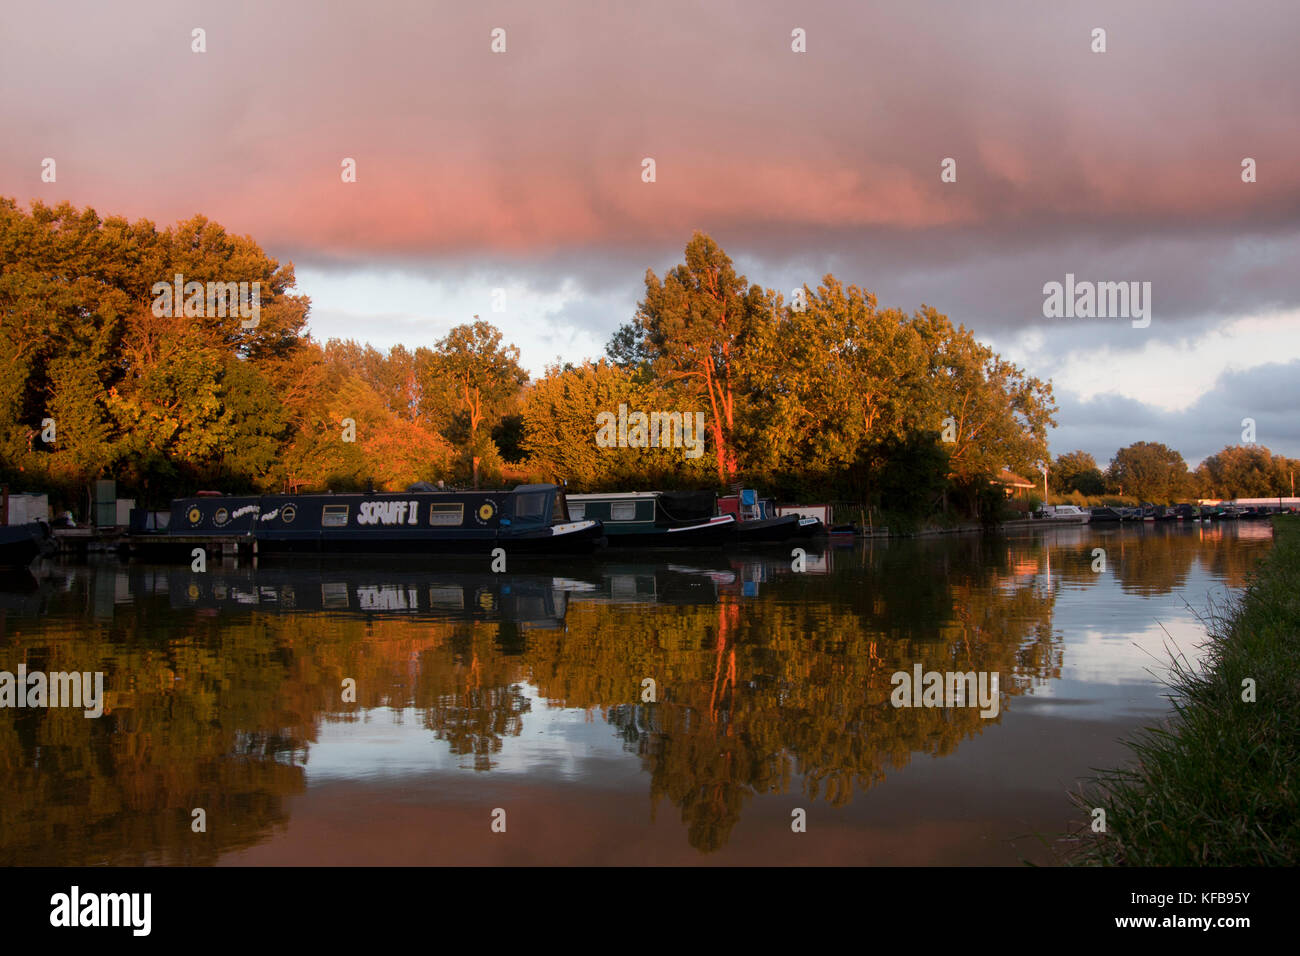 narrowboats moored at Sunset, Cooks Wharf, Grand Union Canal Outer Aylesbury Ring, Cheddington, Buckinghamshire, - Stock Image